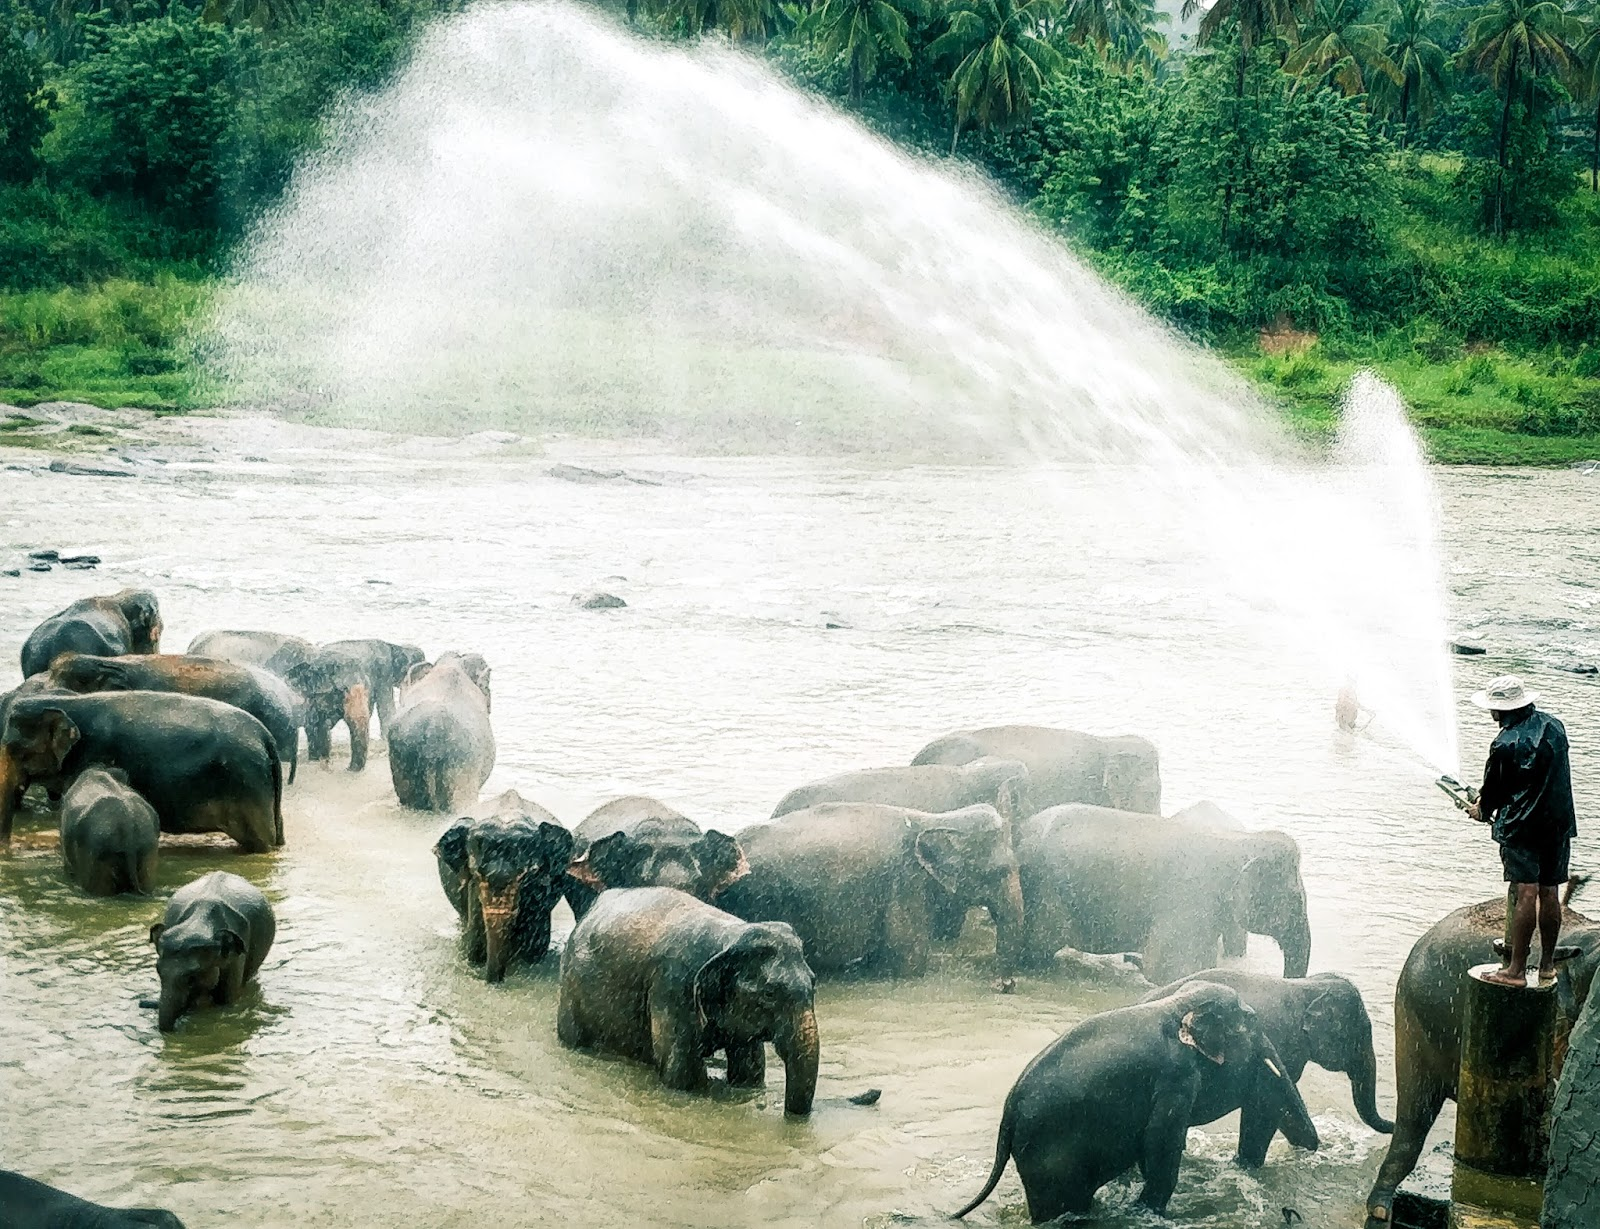 Elephants having a bath at the Pinnawala Elephant Orphanage, Sri Lanka